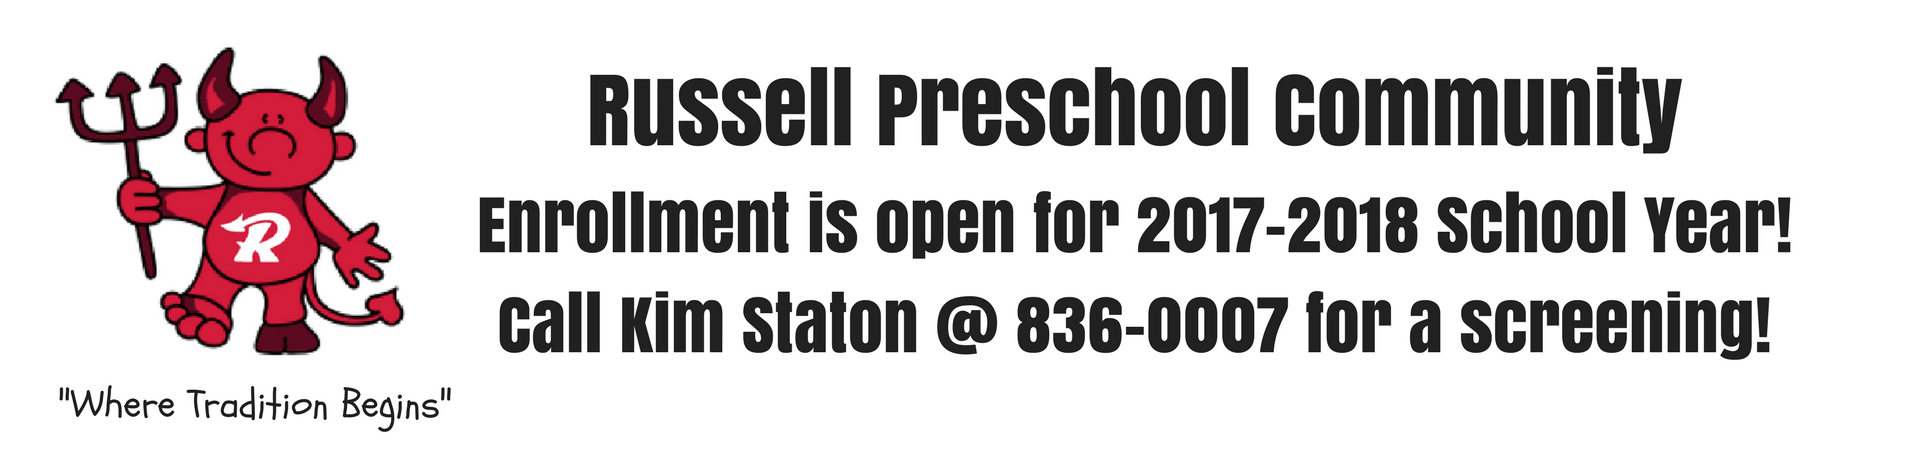 Russell Preschool Community Information